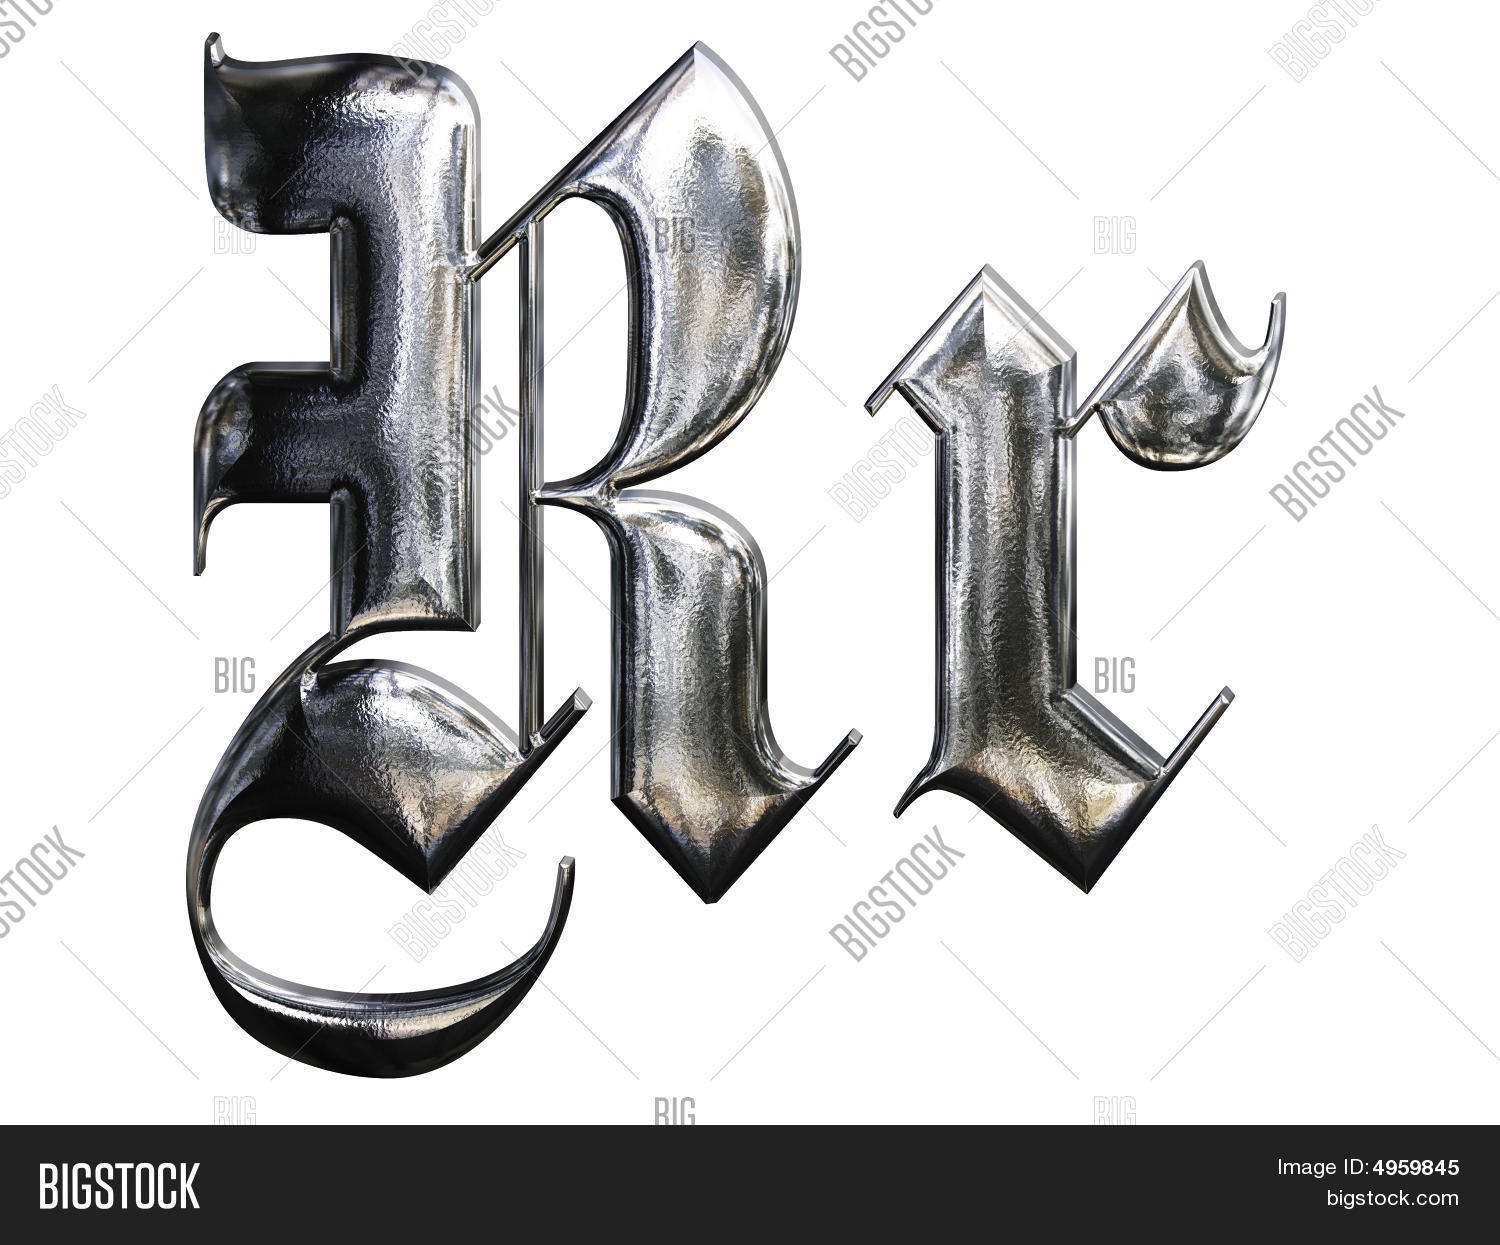 Metallic Patterned Image  Photo Free Trial  Bigstock